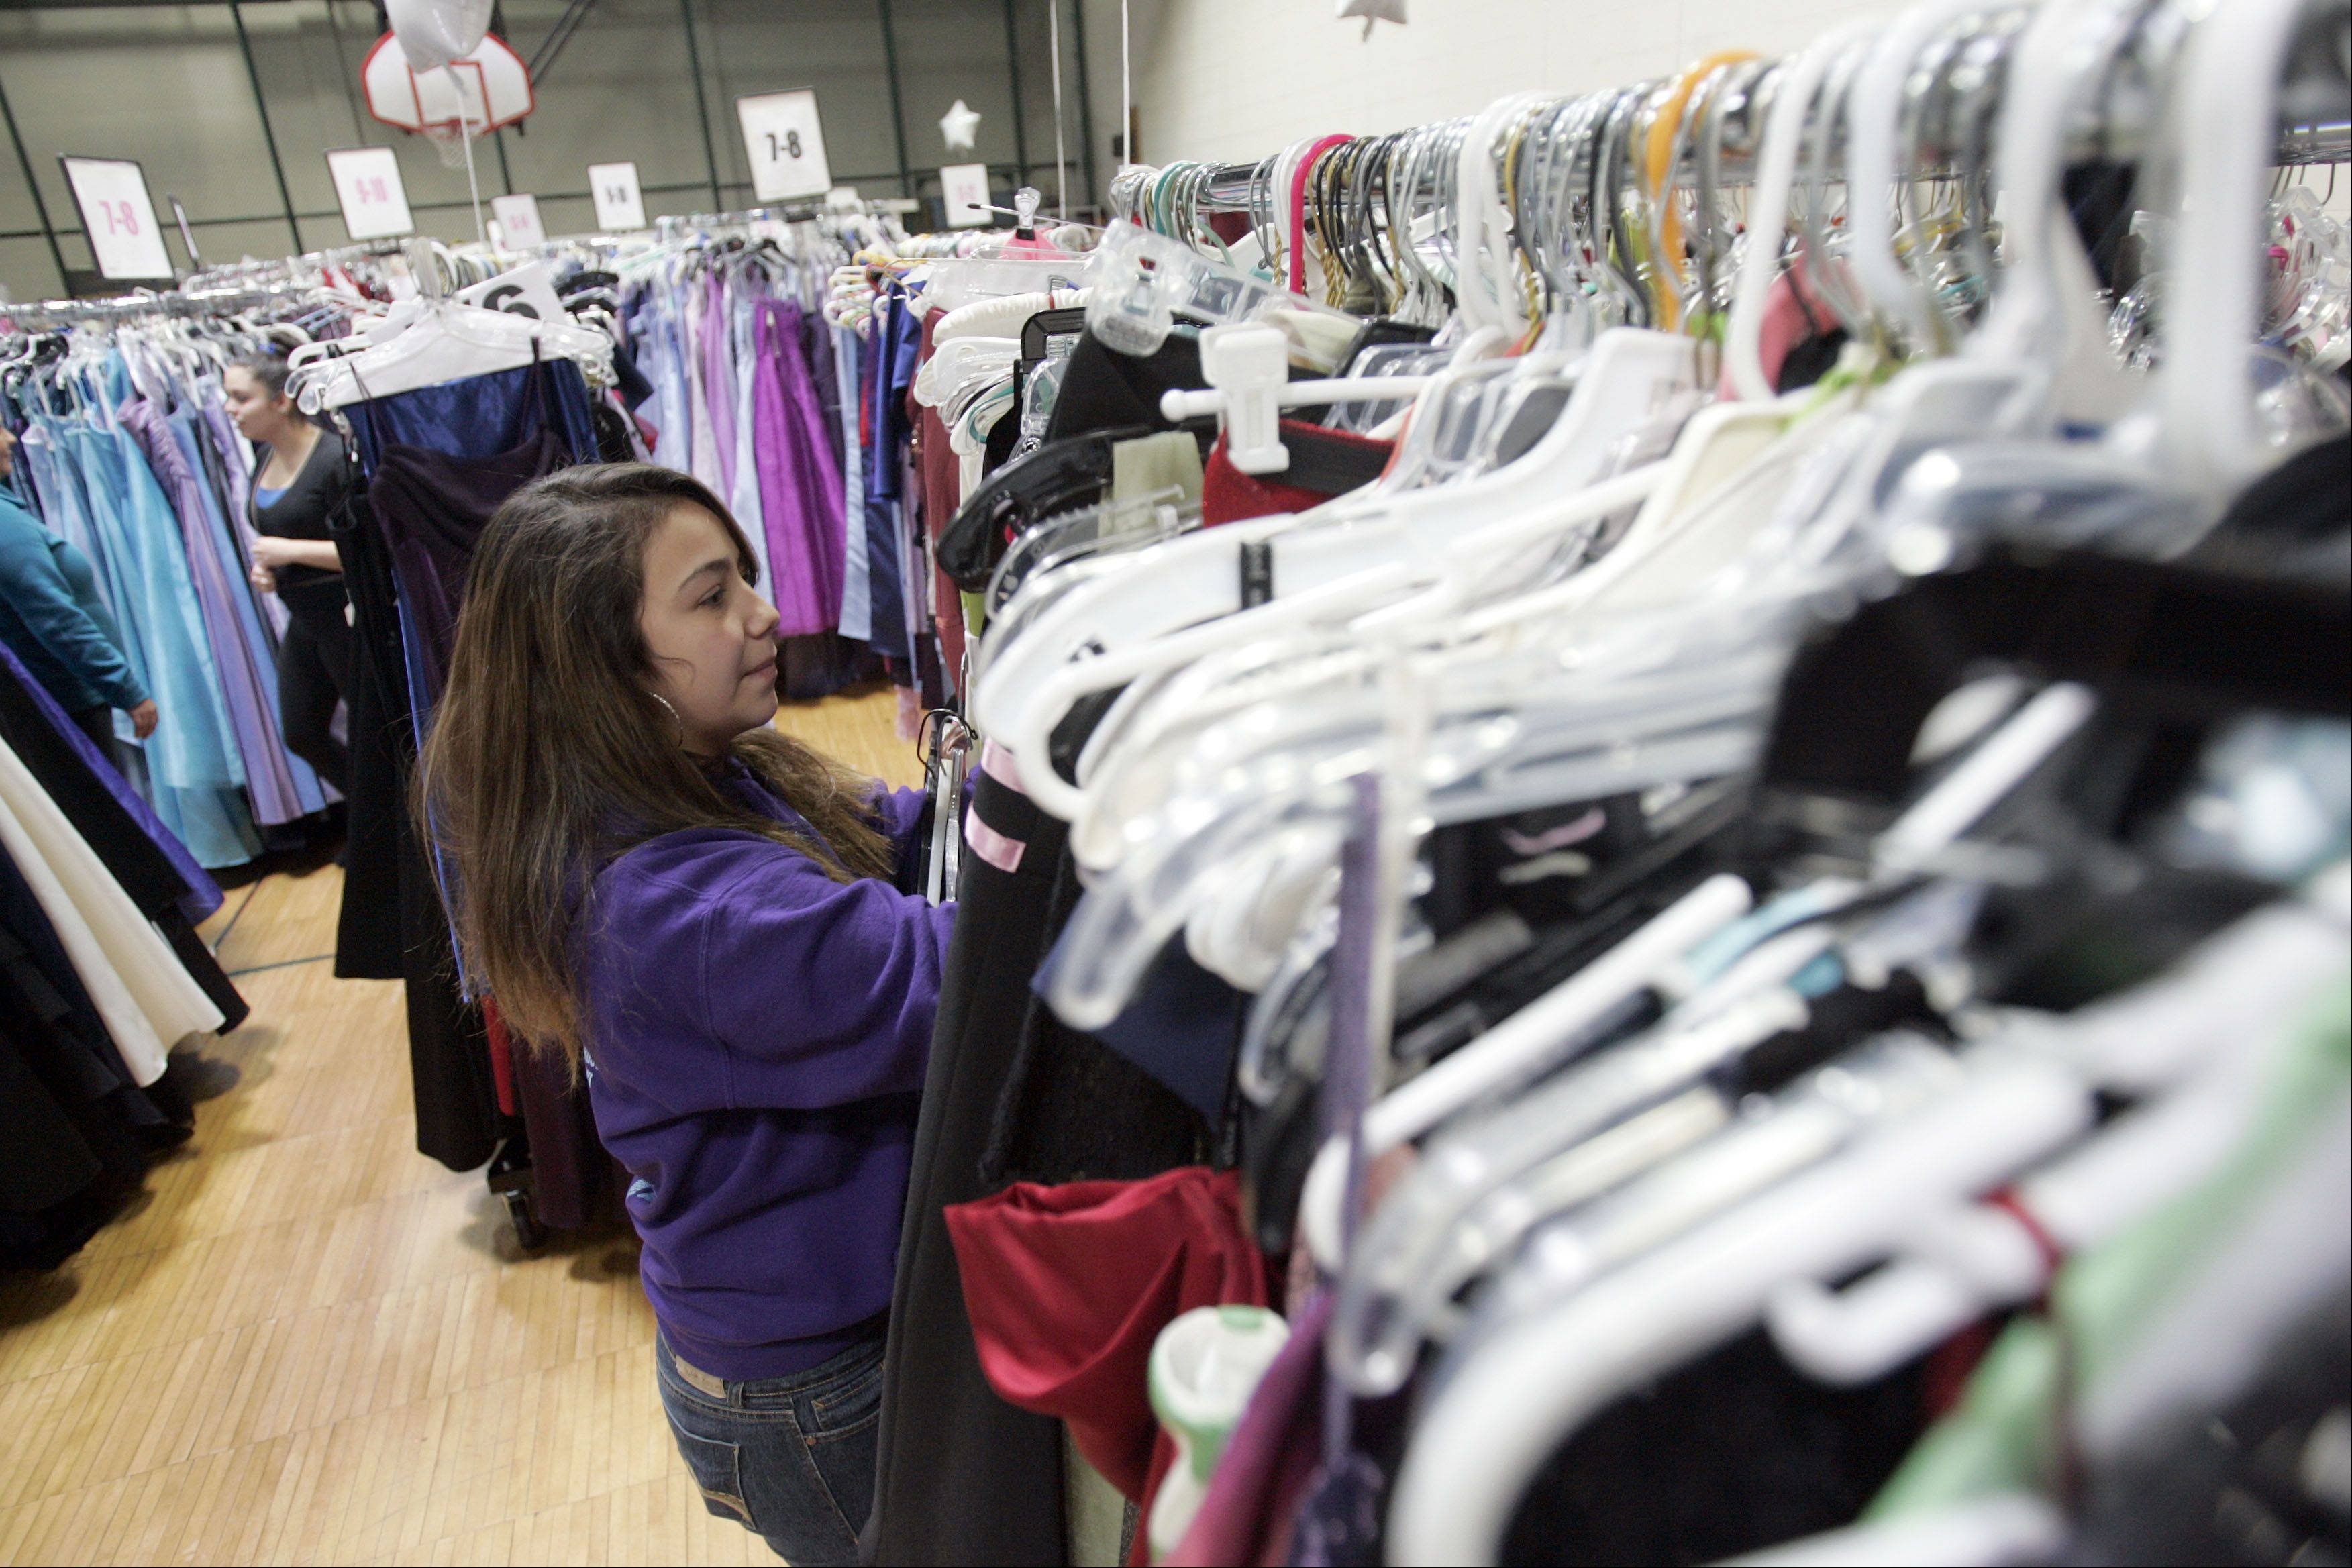 Looking for just the right dress, 15-year-old Karina Robledo of Elgin searches through some of the 4,000 options during the annual Cinderella�s Closet event Saturday at the YWCA in Elgin.